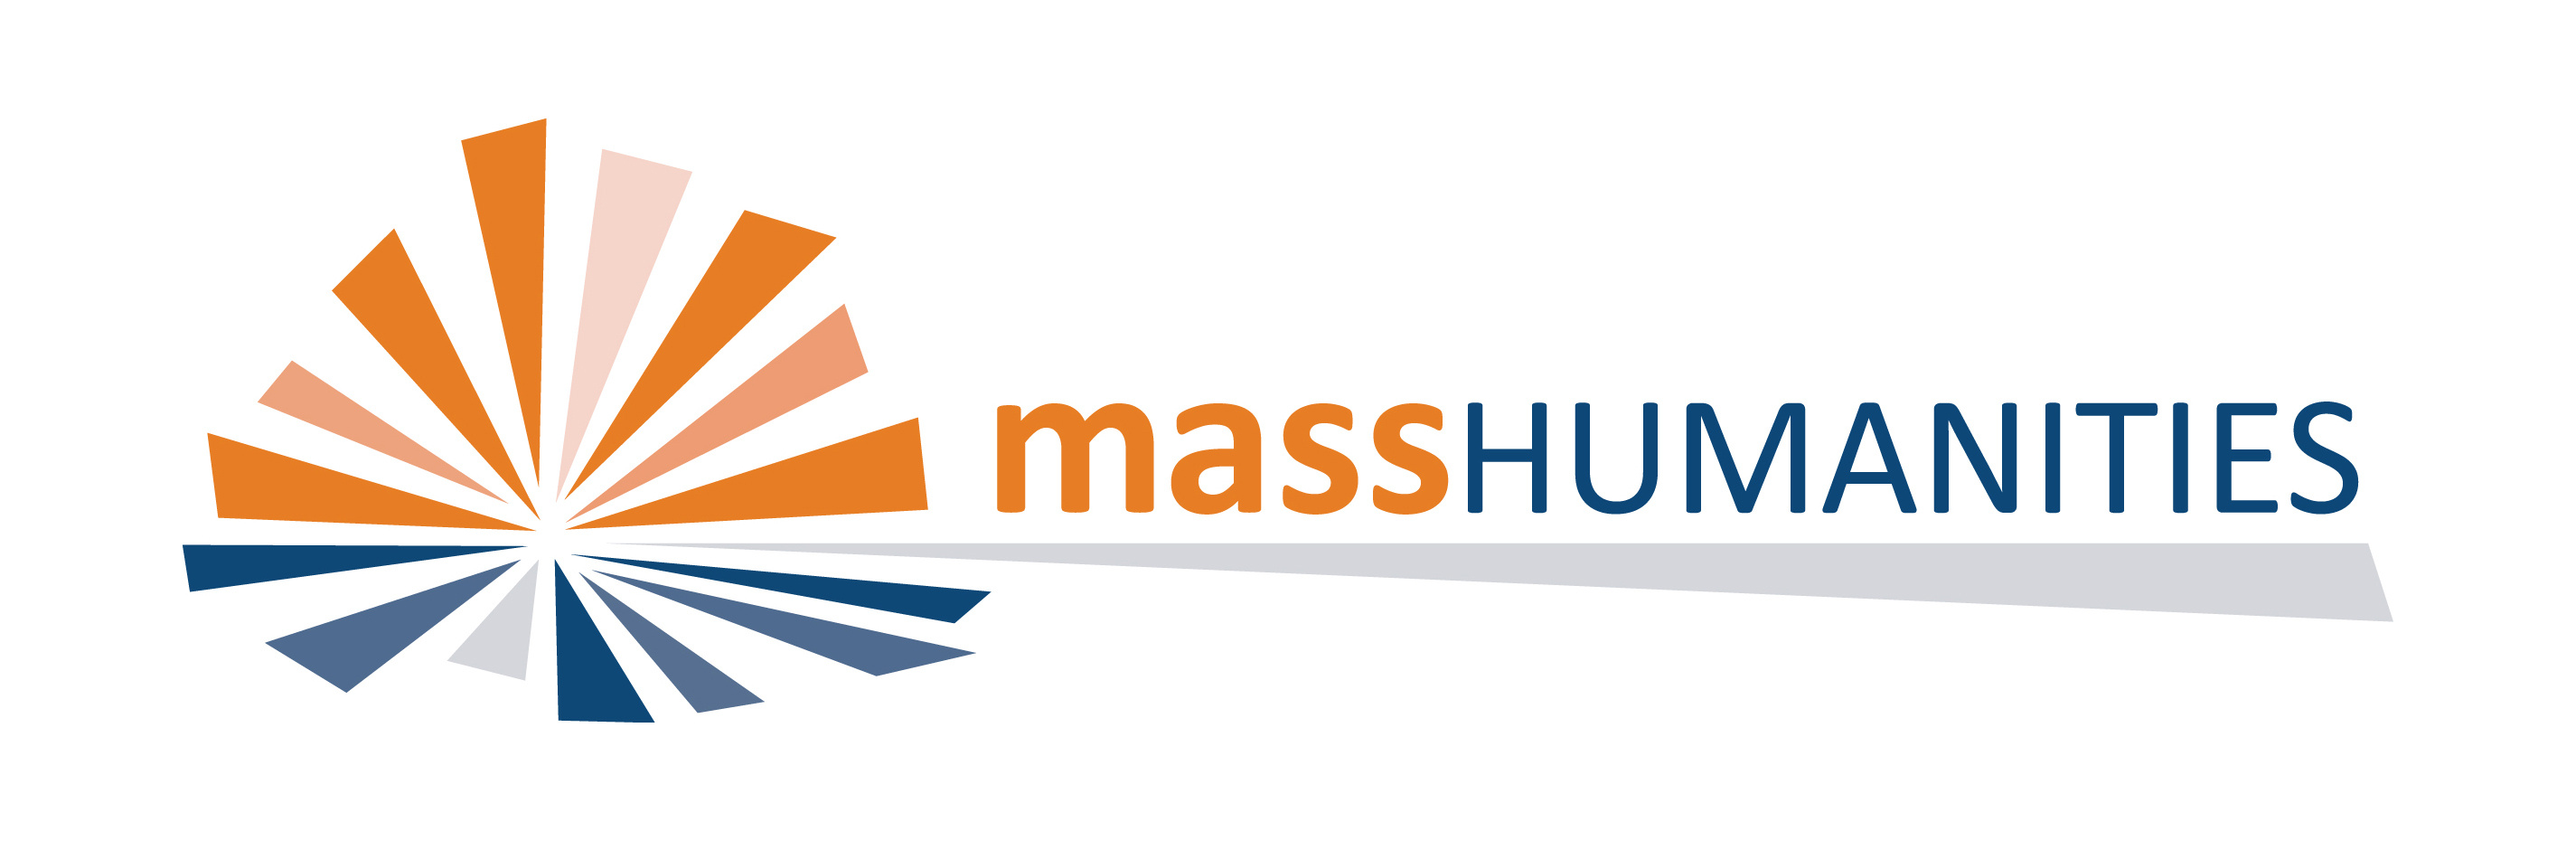 mass_humanities_2